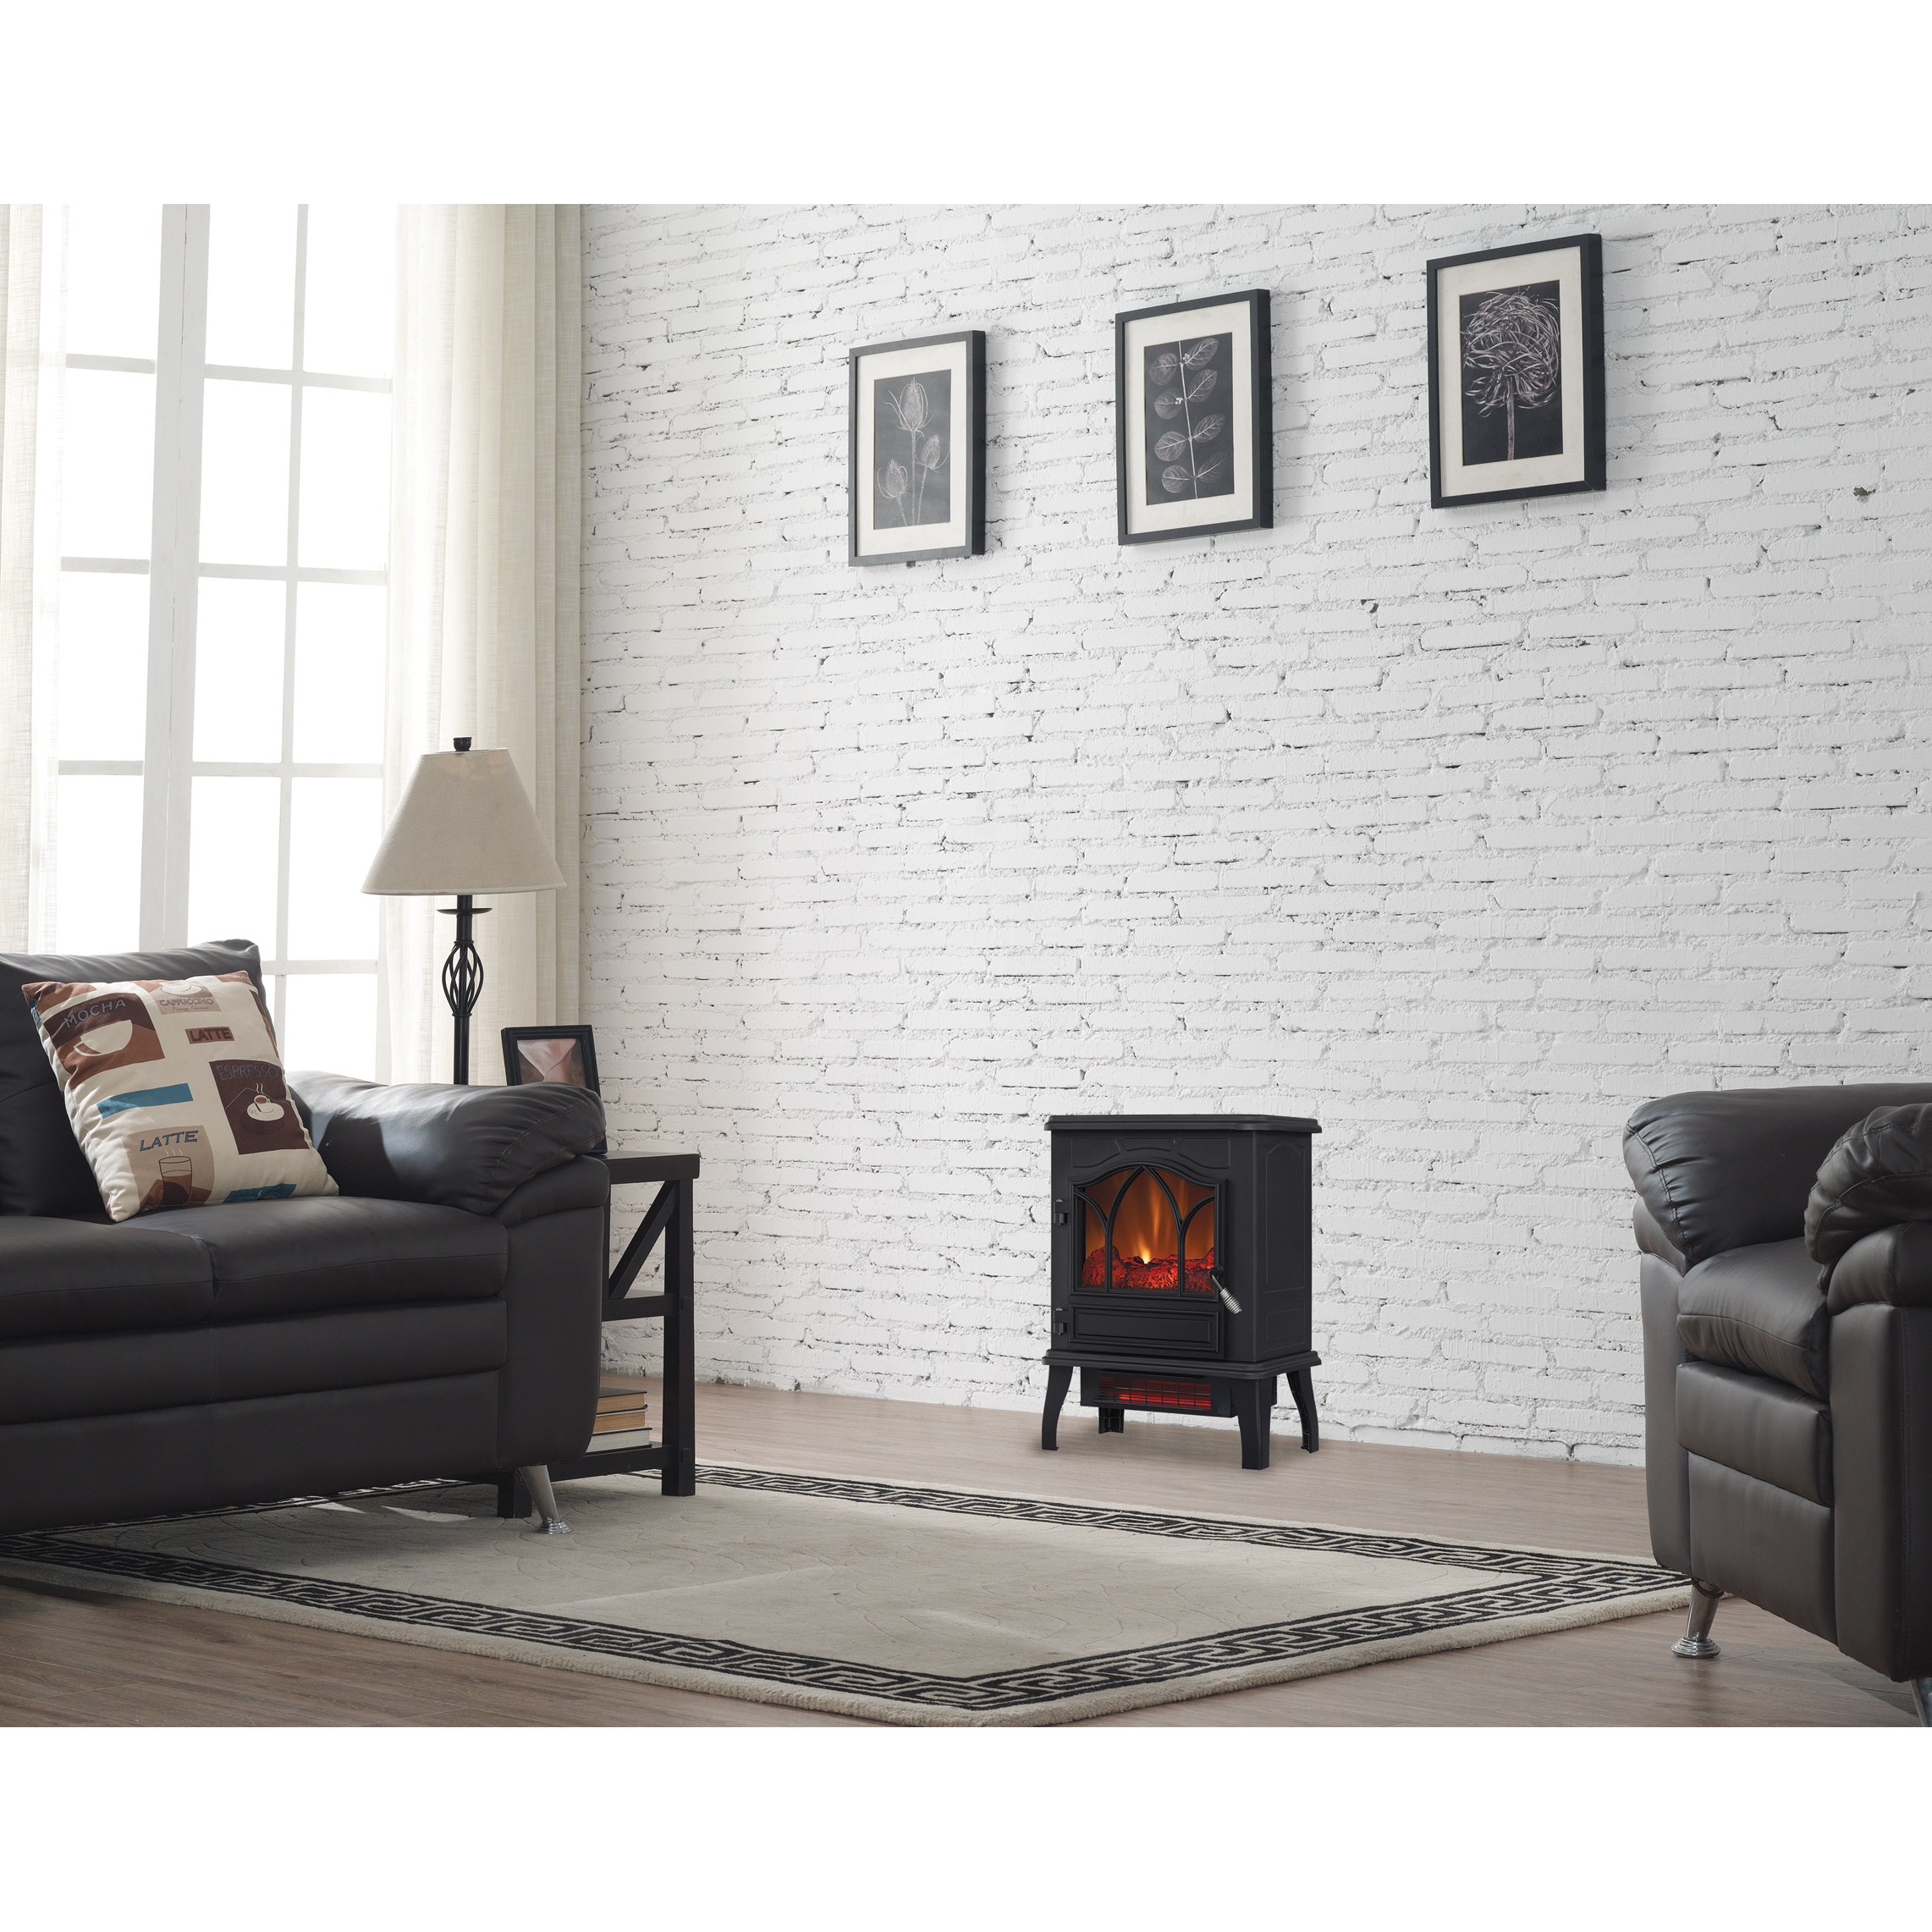 ChimneyFree Electric Infrared Quartz Stove Heater, 5,200 BTU ...